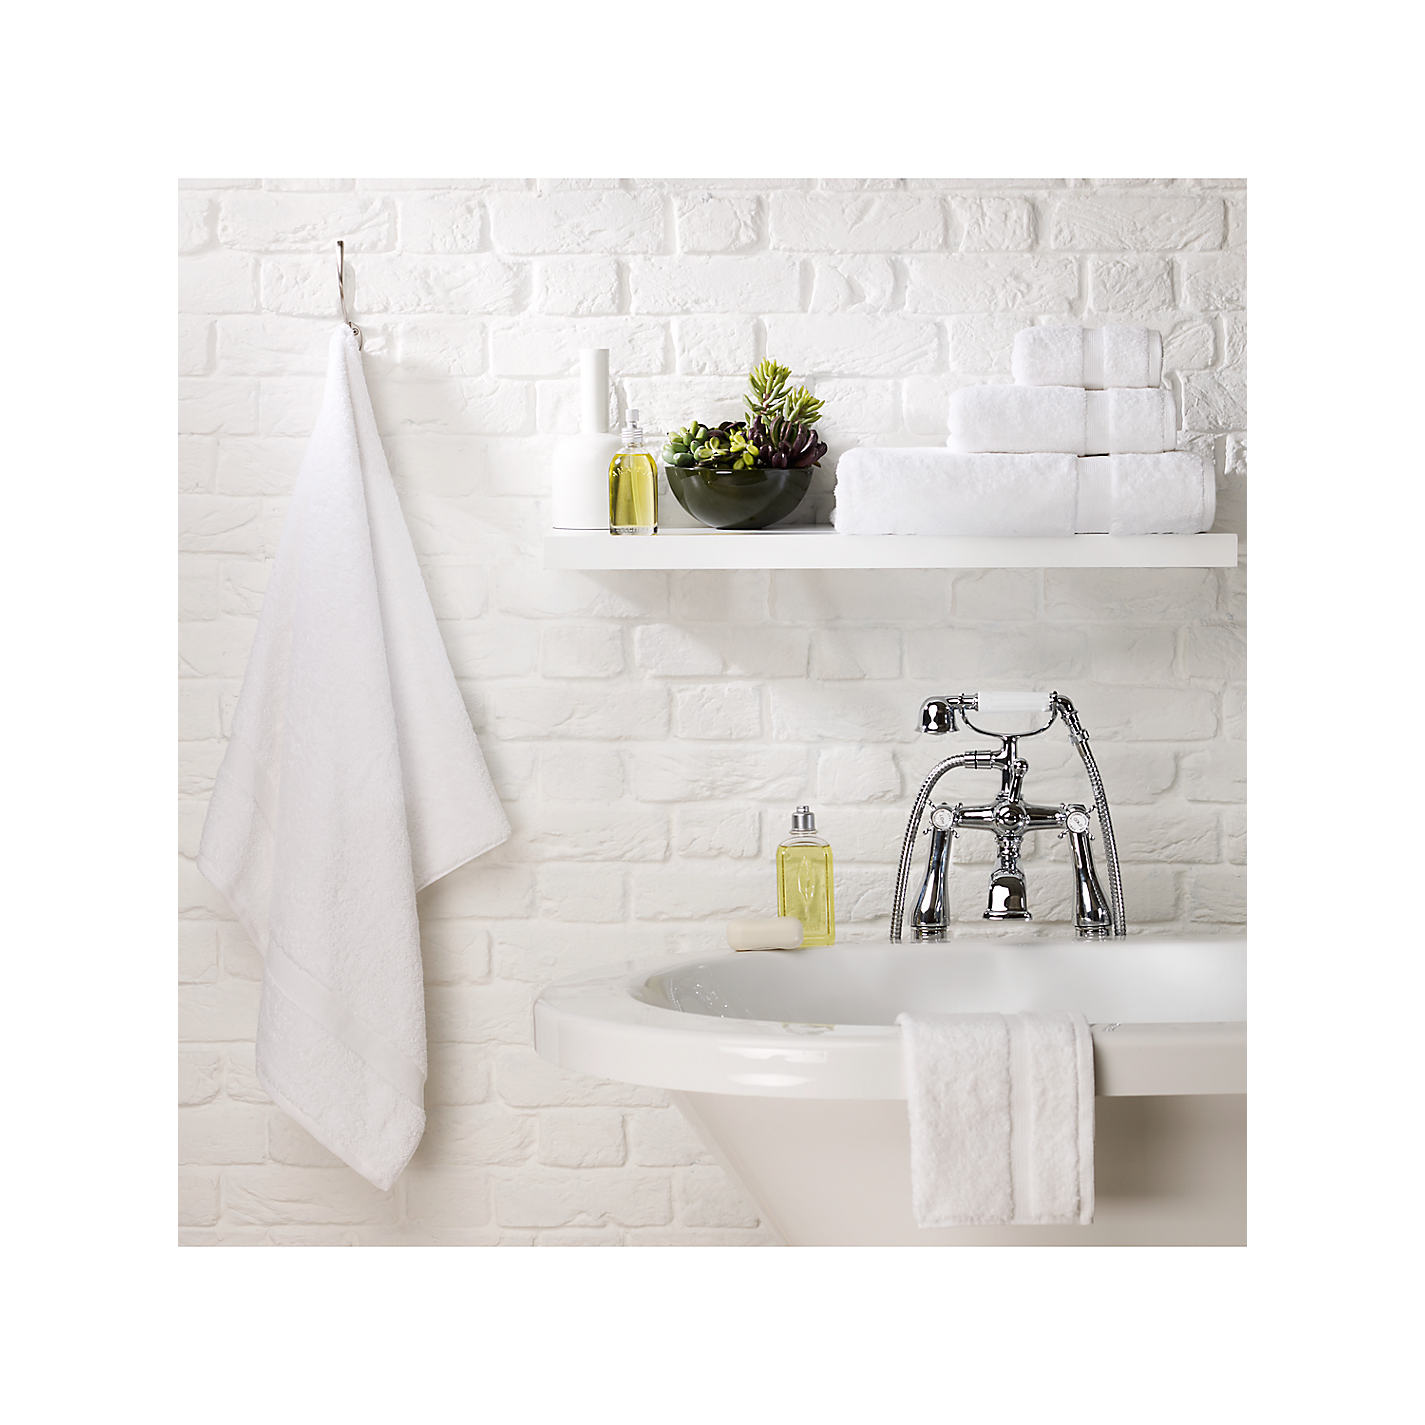 Bathroom Tiles John Lewis buy john lewis egyptian cotton towels | john lewis